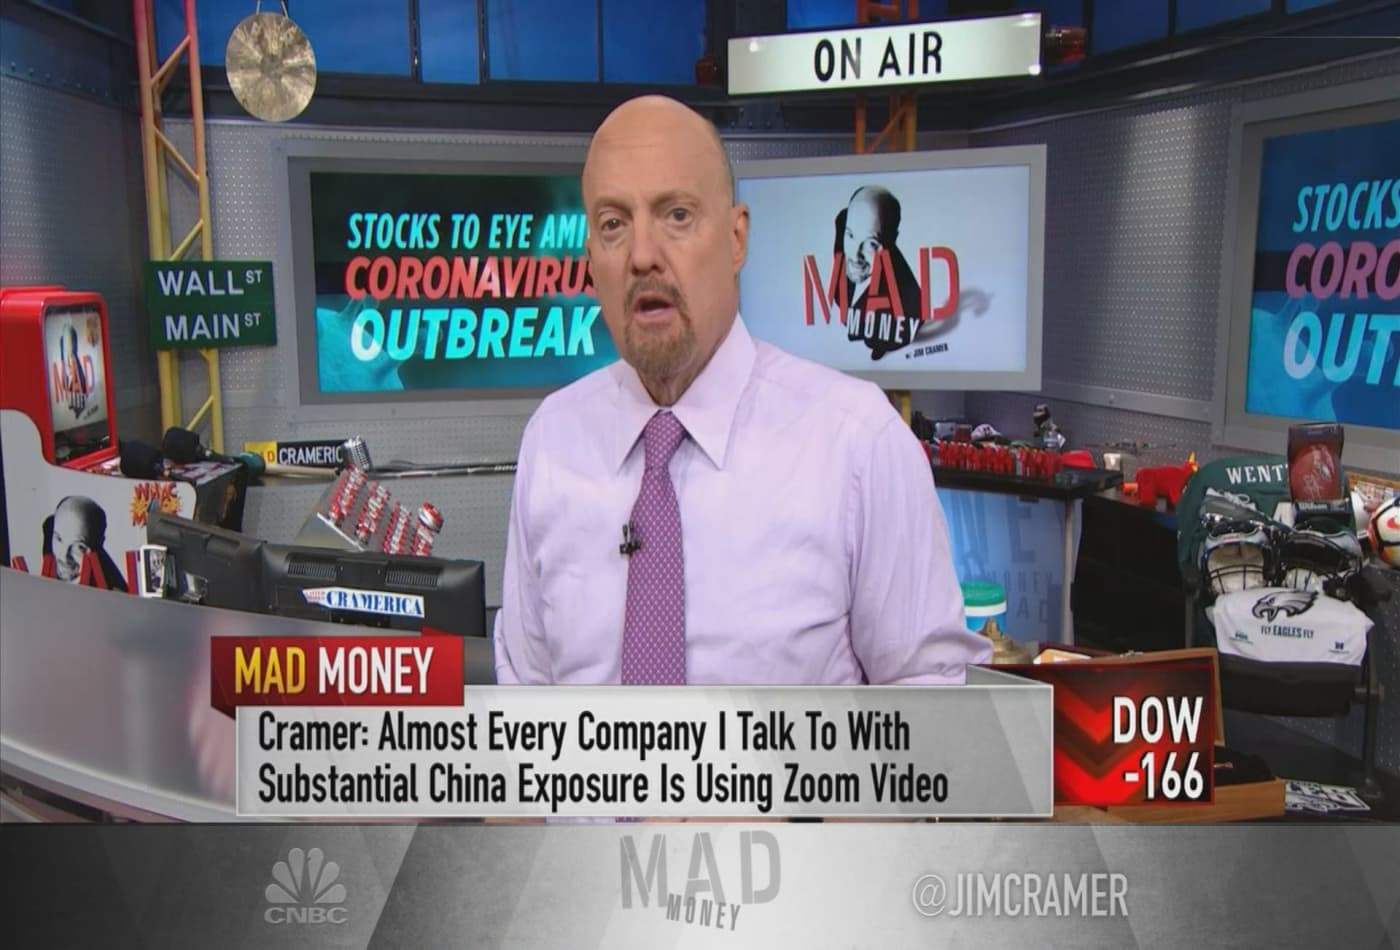 Some companies are benefiting from the coronavirus outbreak, Jim Cramer says